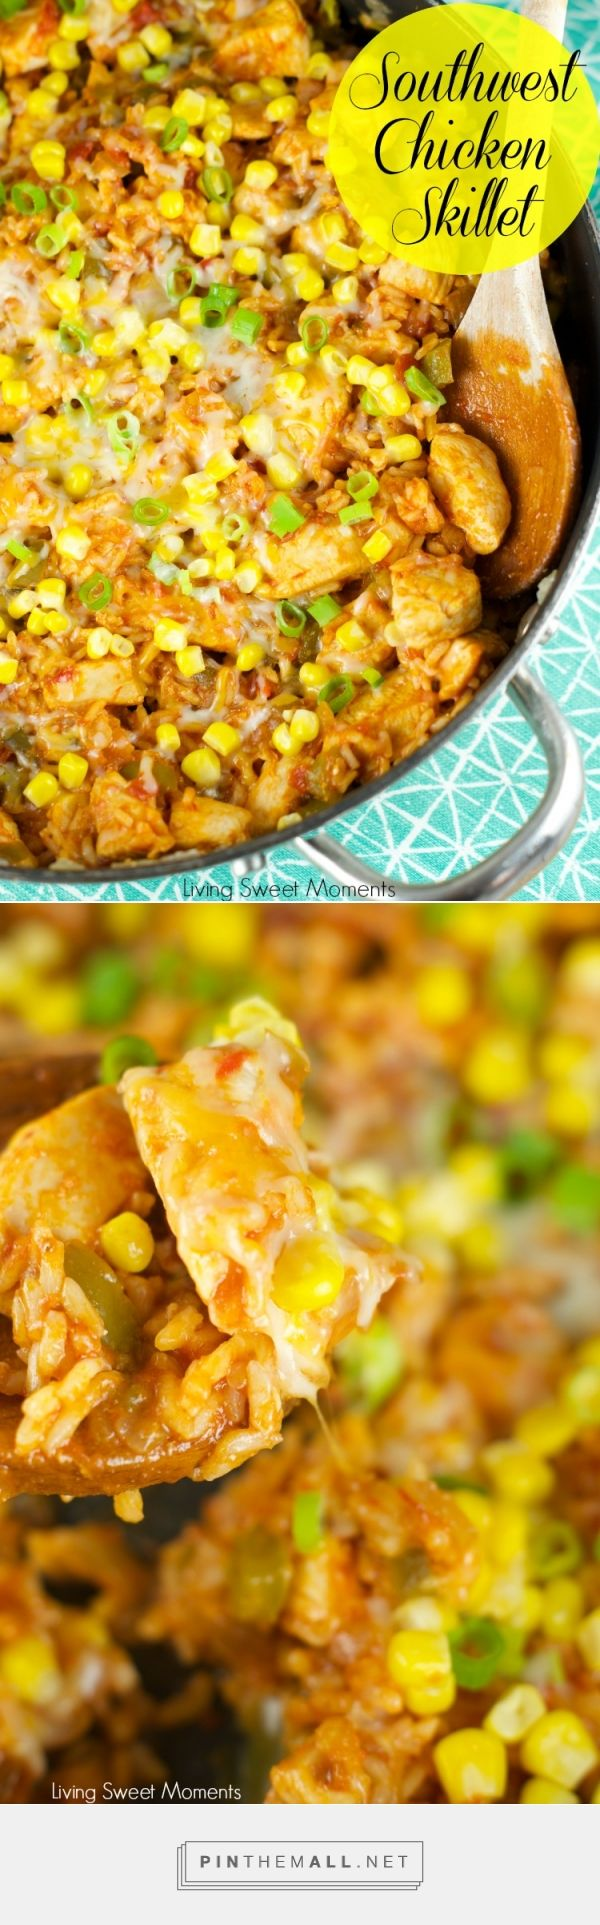 Southwest Skillet Chicken And Rice  – delicious one pot meal under 30 minutes. This easy to make chicken dish uses store bought salsa and other yummy southwest flavors